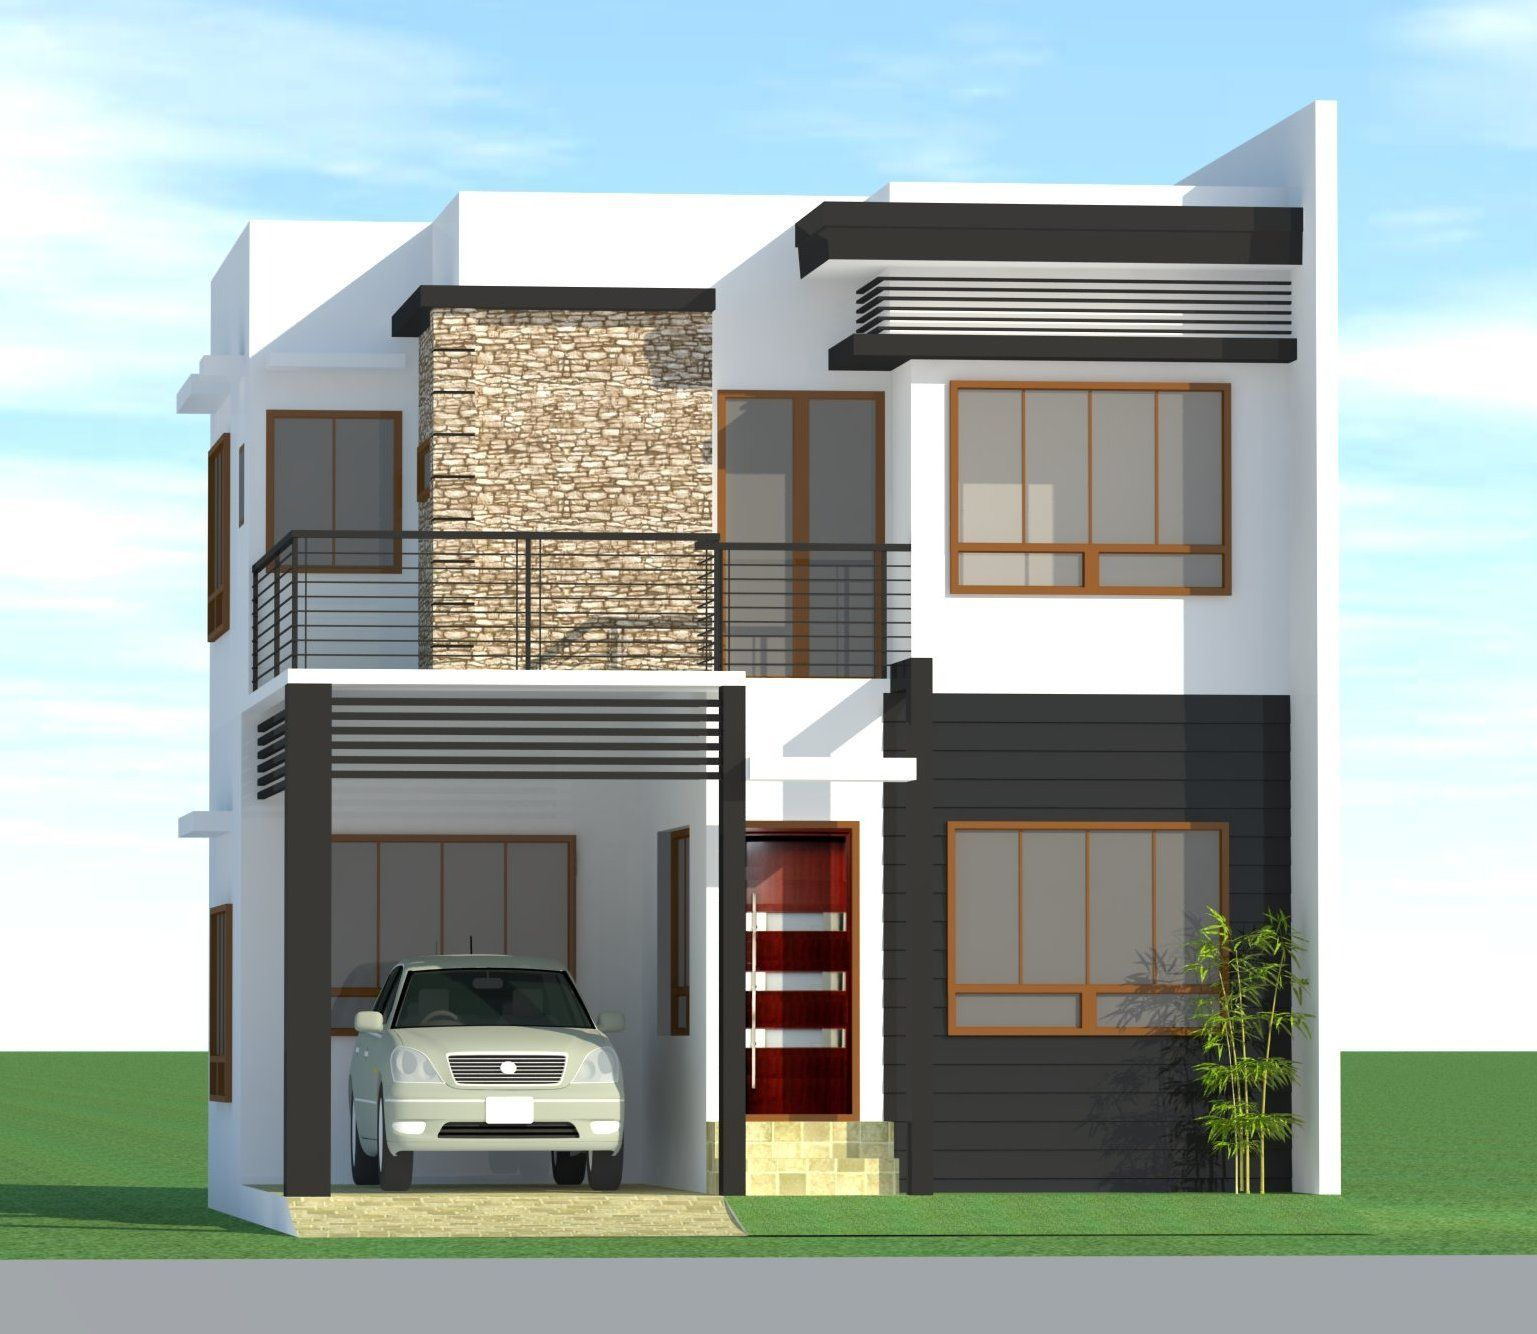 Marvellous design modern architectural house philippines small in